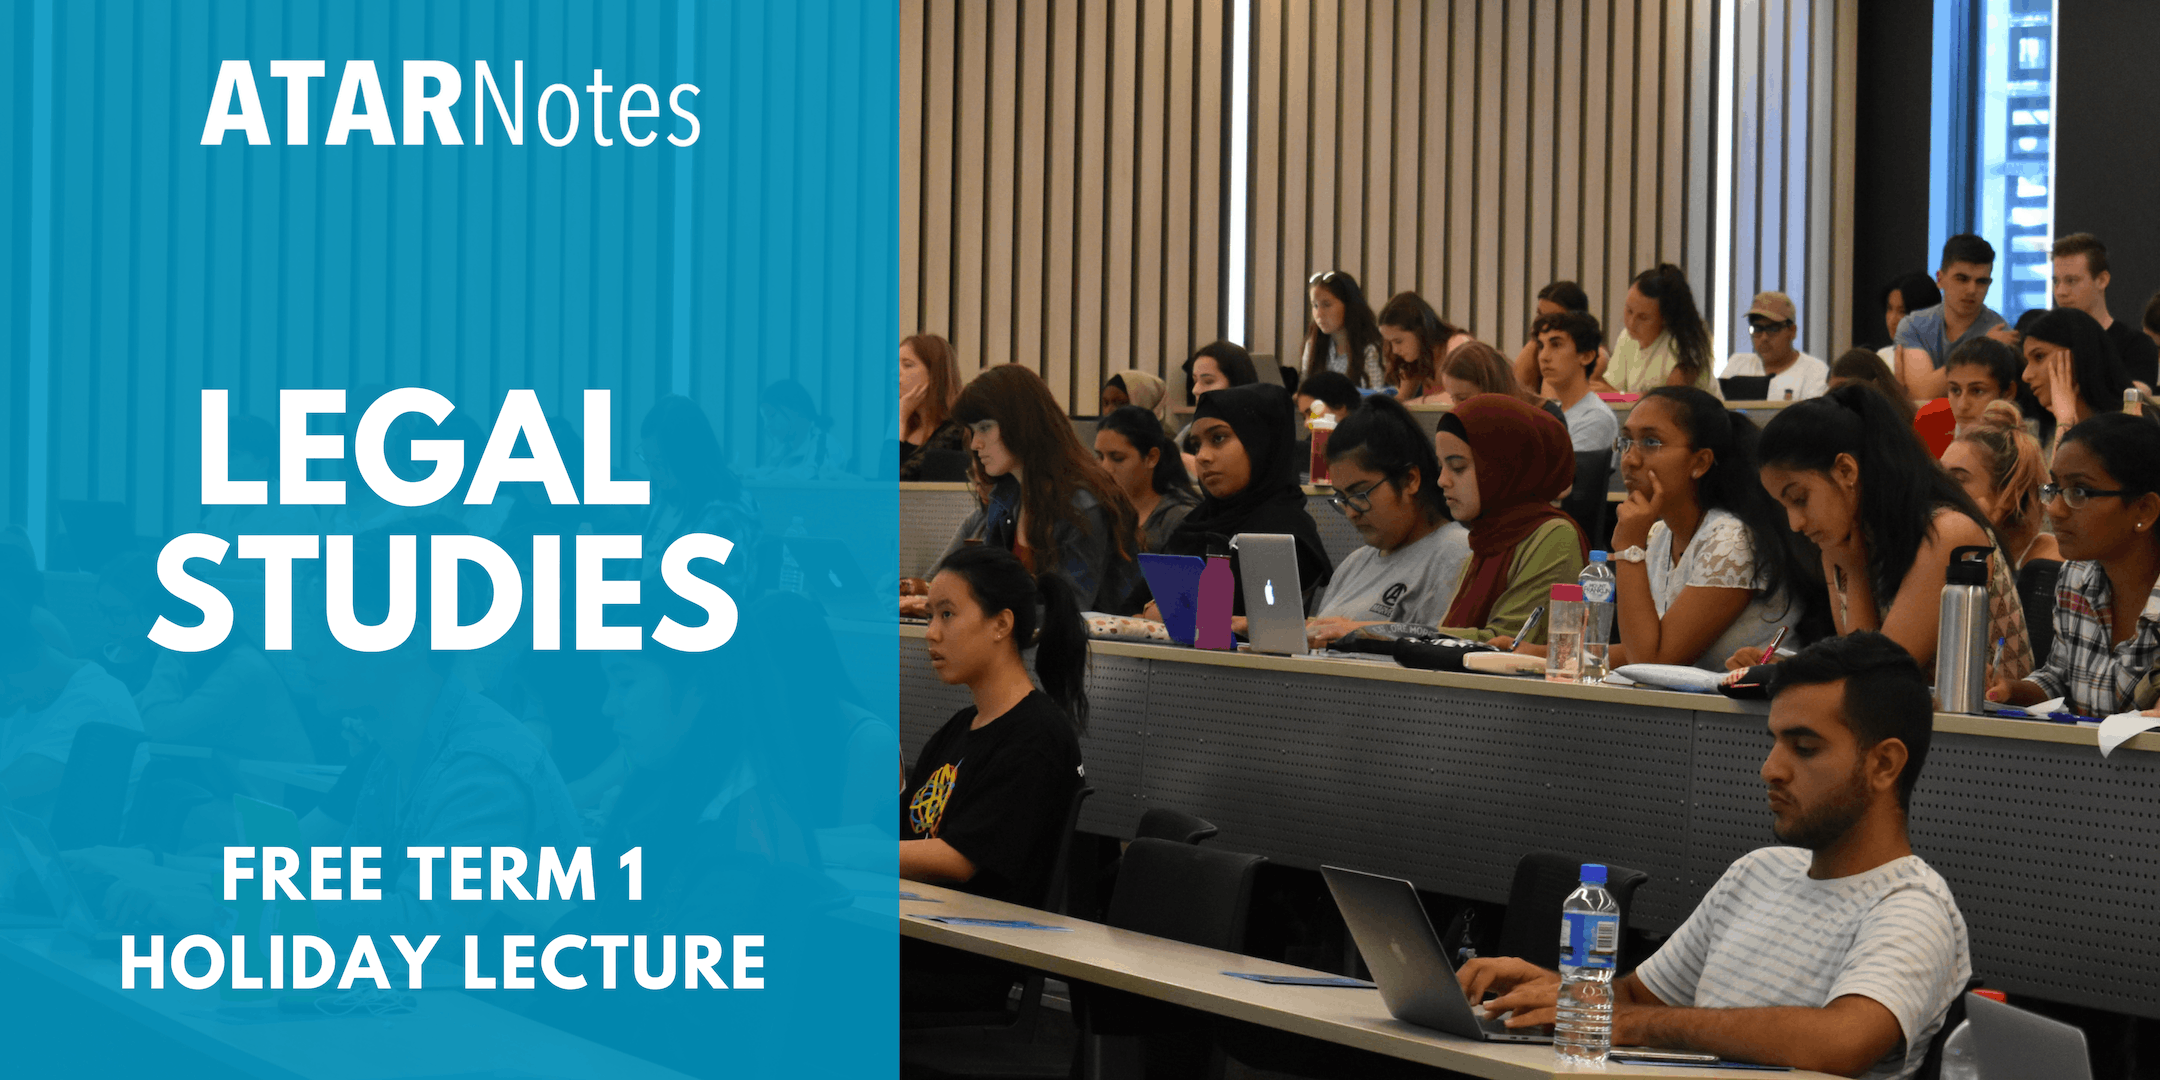 Atar Notes Lectures Review